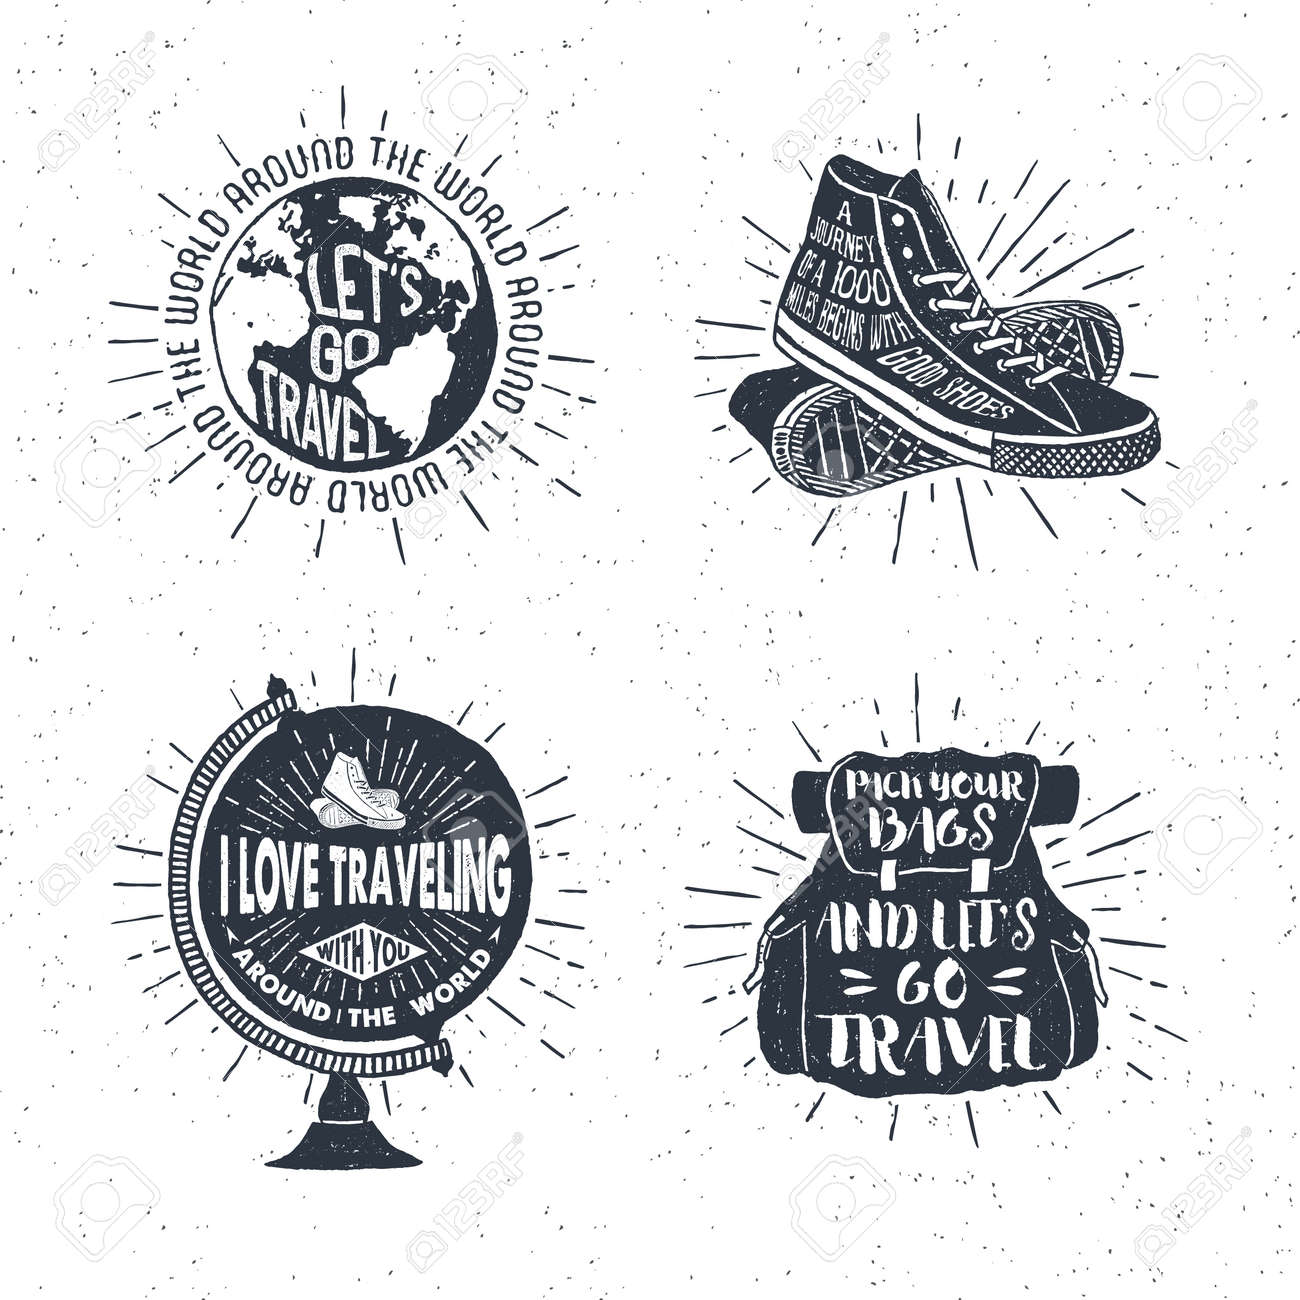 Hand drawn textured vintage labels, retro badges set with globe, sneakers, bag, and lettering vector illustrations. - 55094490